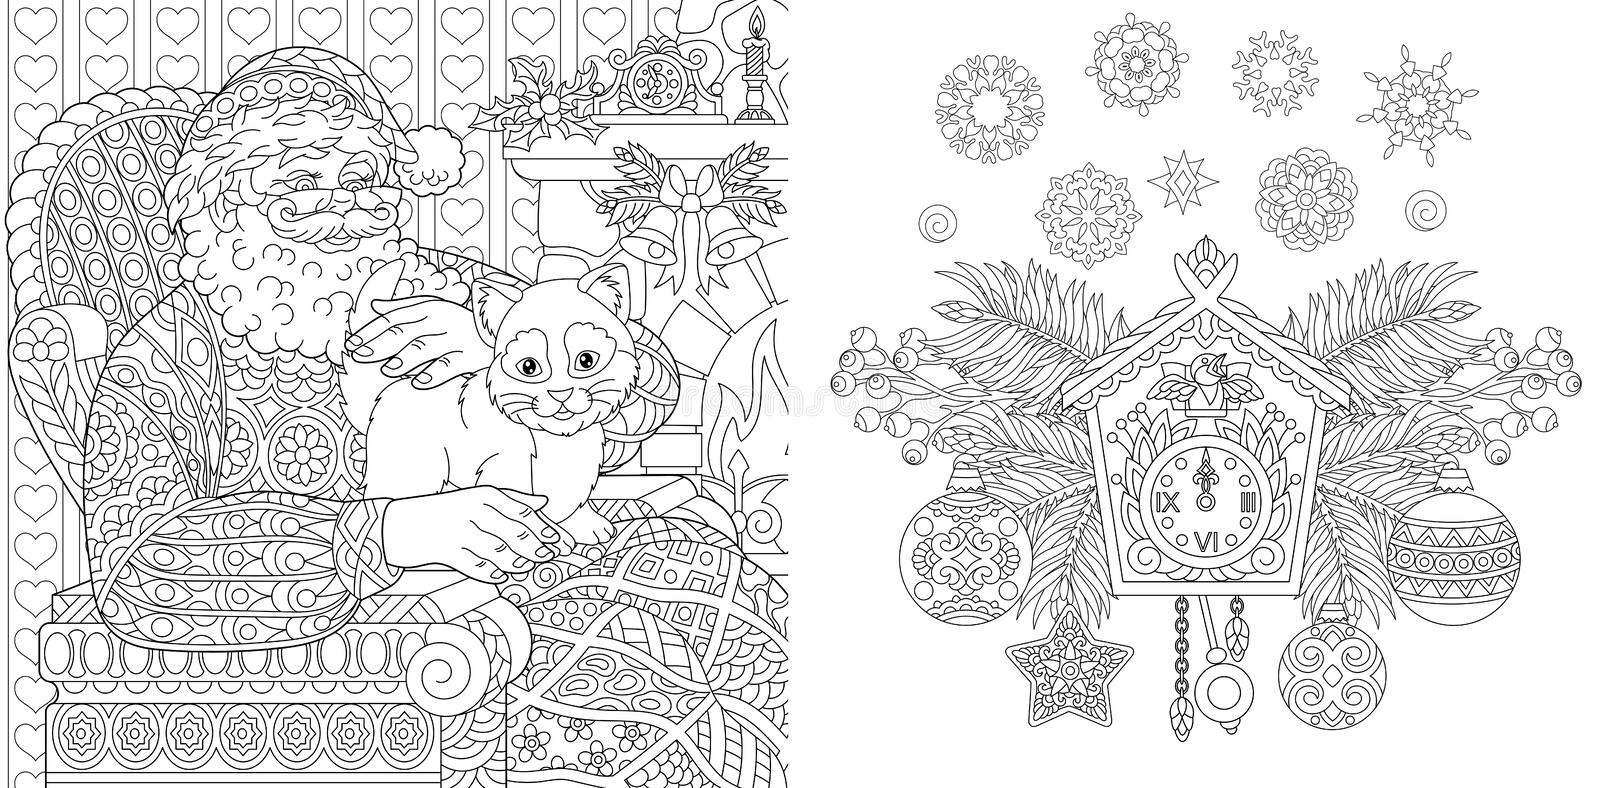 Christmas Colouring Stock Illustrations 1 409 Christmas Colouring Stock Illustrations Vectors Clipart Dreamstime